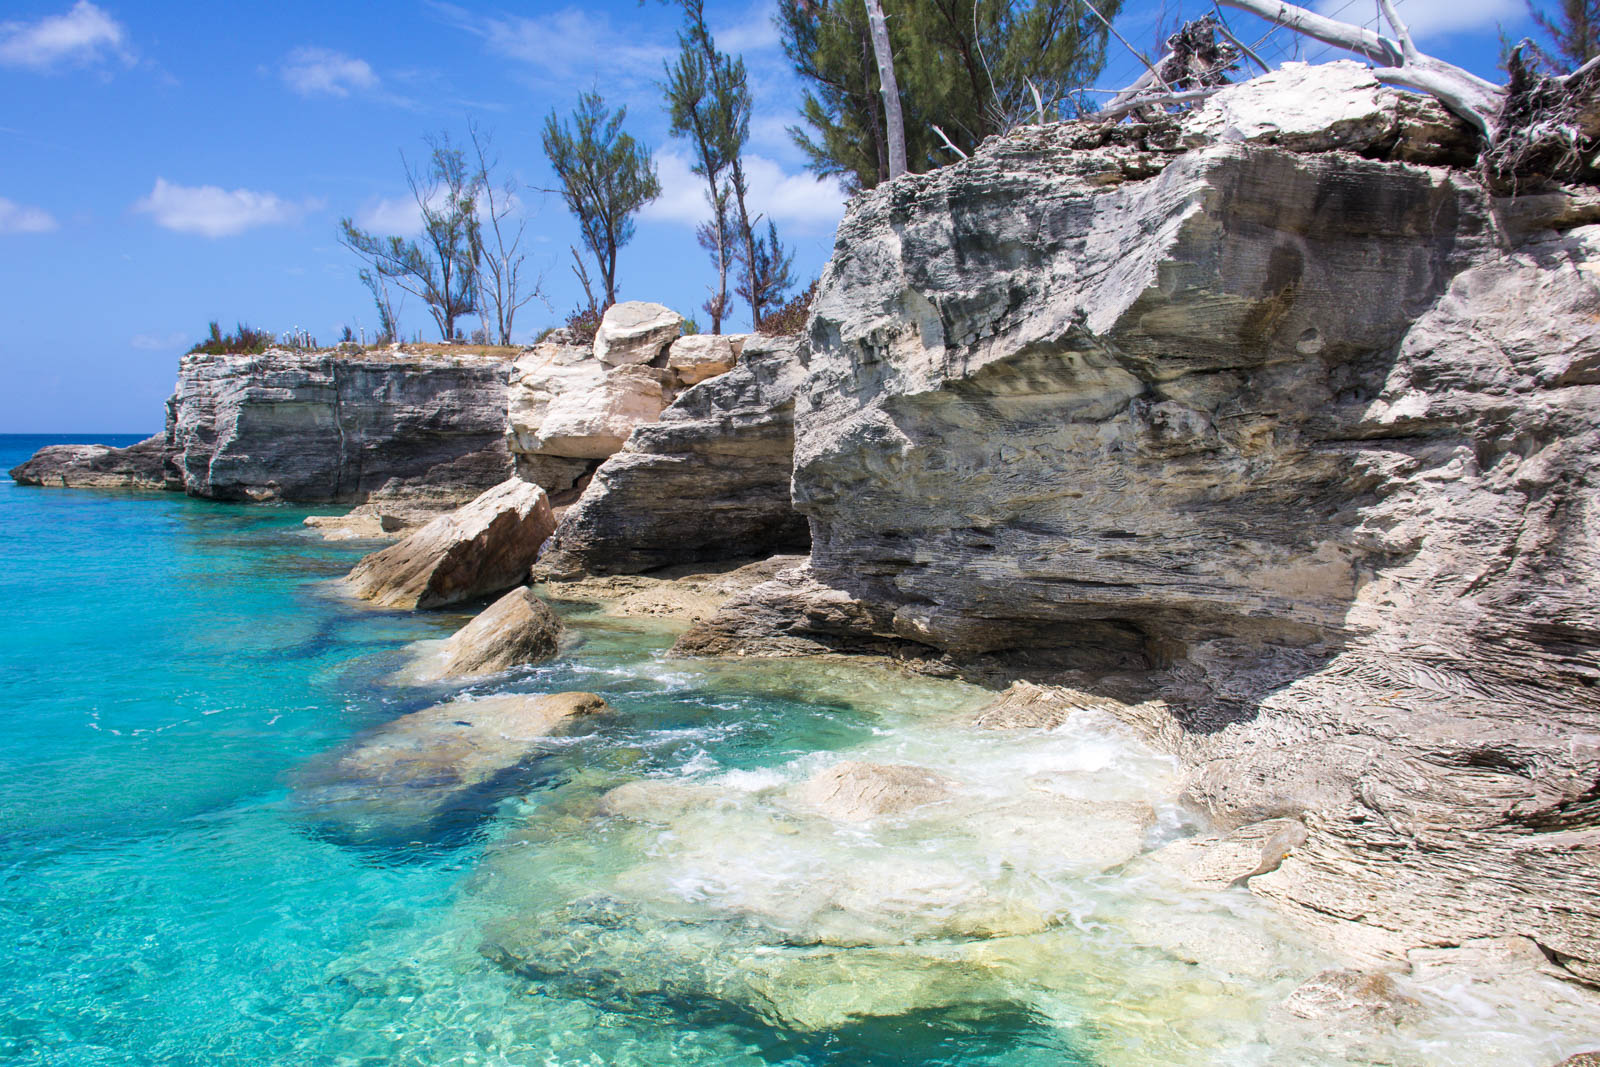 Dive into the turquoise waters of the Bahamas. There are plenty of the best things to do in Nassau located just around the cruise port for those on flights to Bahamas.